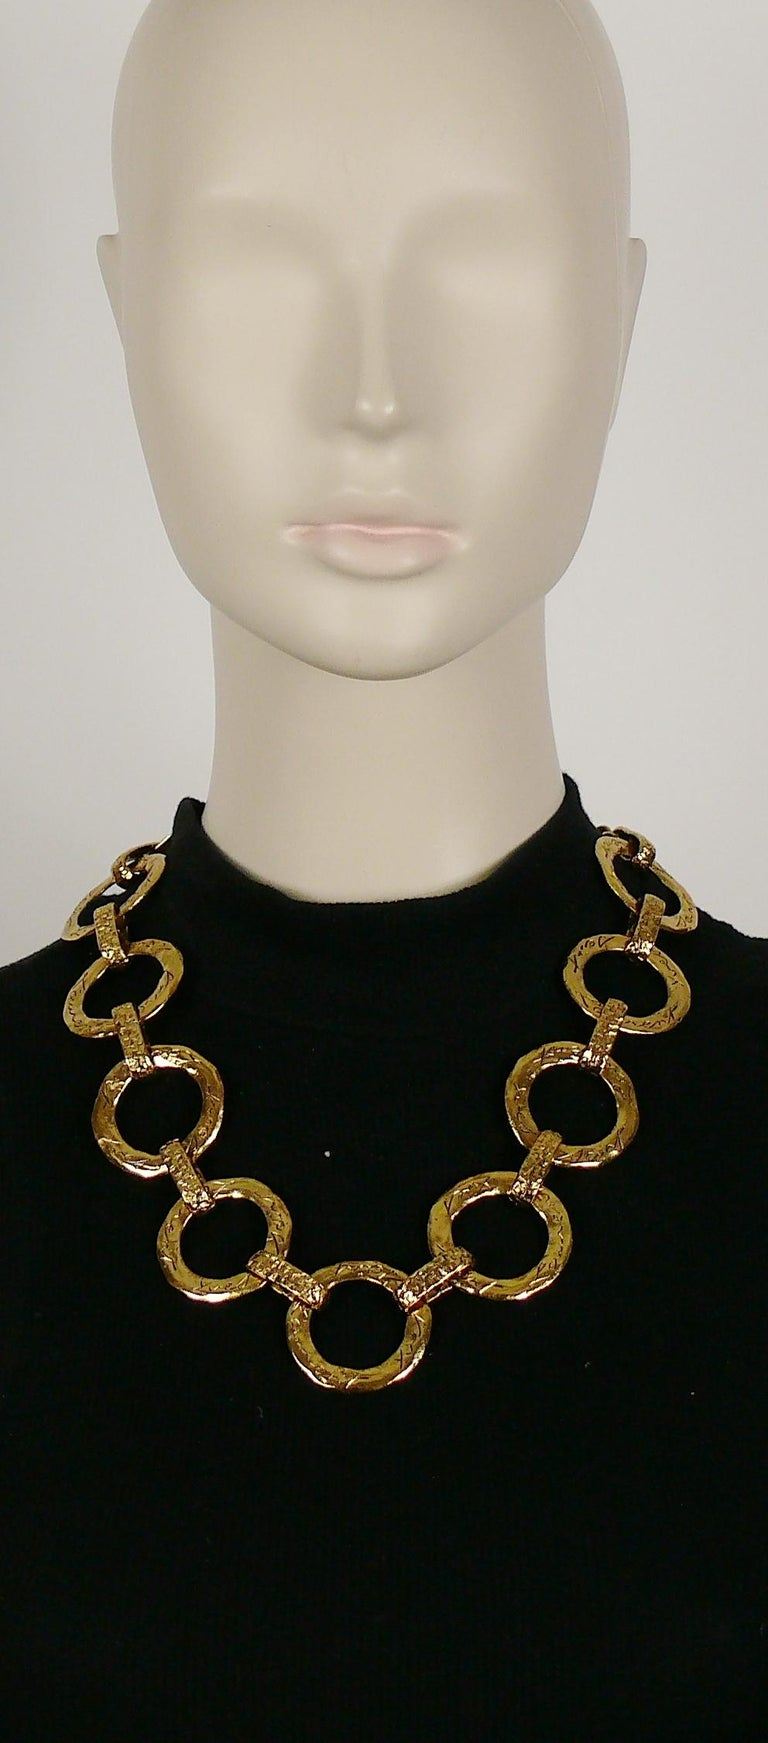 YVES SAINT LAURENT vintage gold toned necklace chunky textured circle links.  T bar and toggle closure. Adjustable length.  Embossed YVES SAINT LAURENT cursive signature on the toggles. Made in France.  Indicative mesaurements : adjustable length